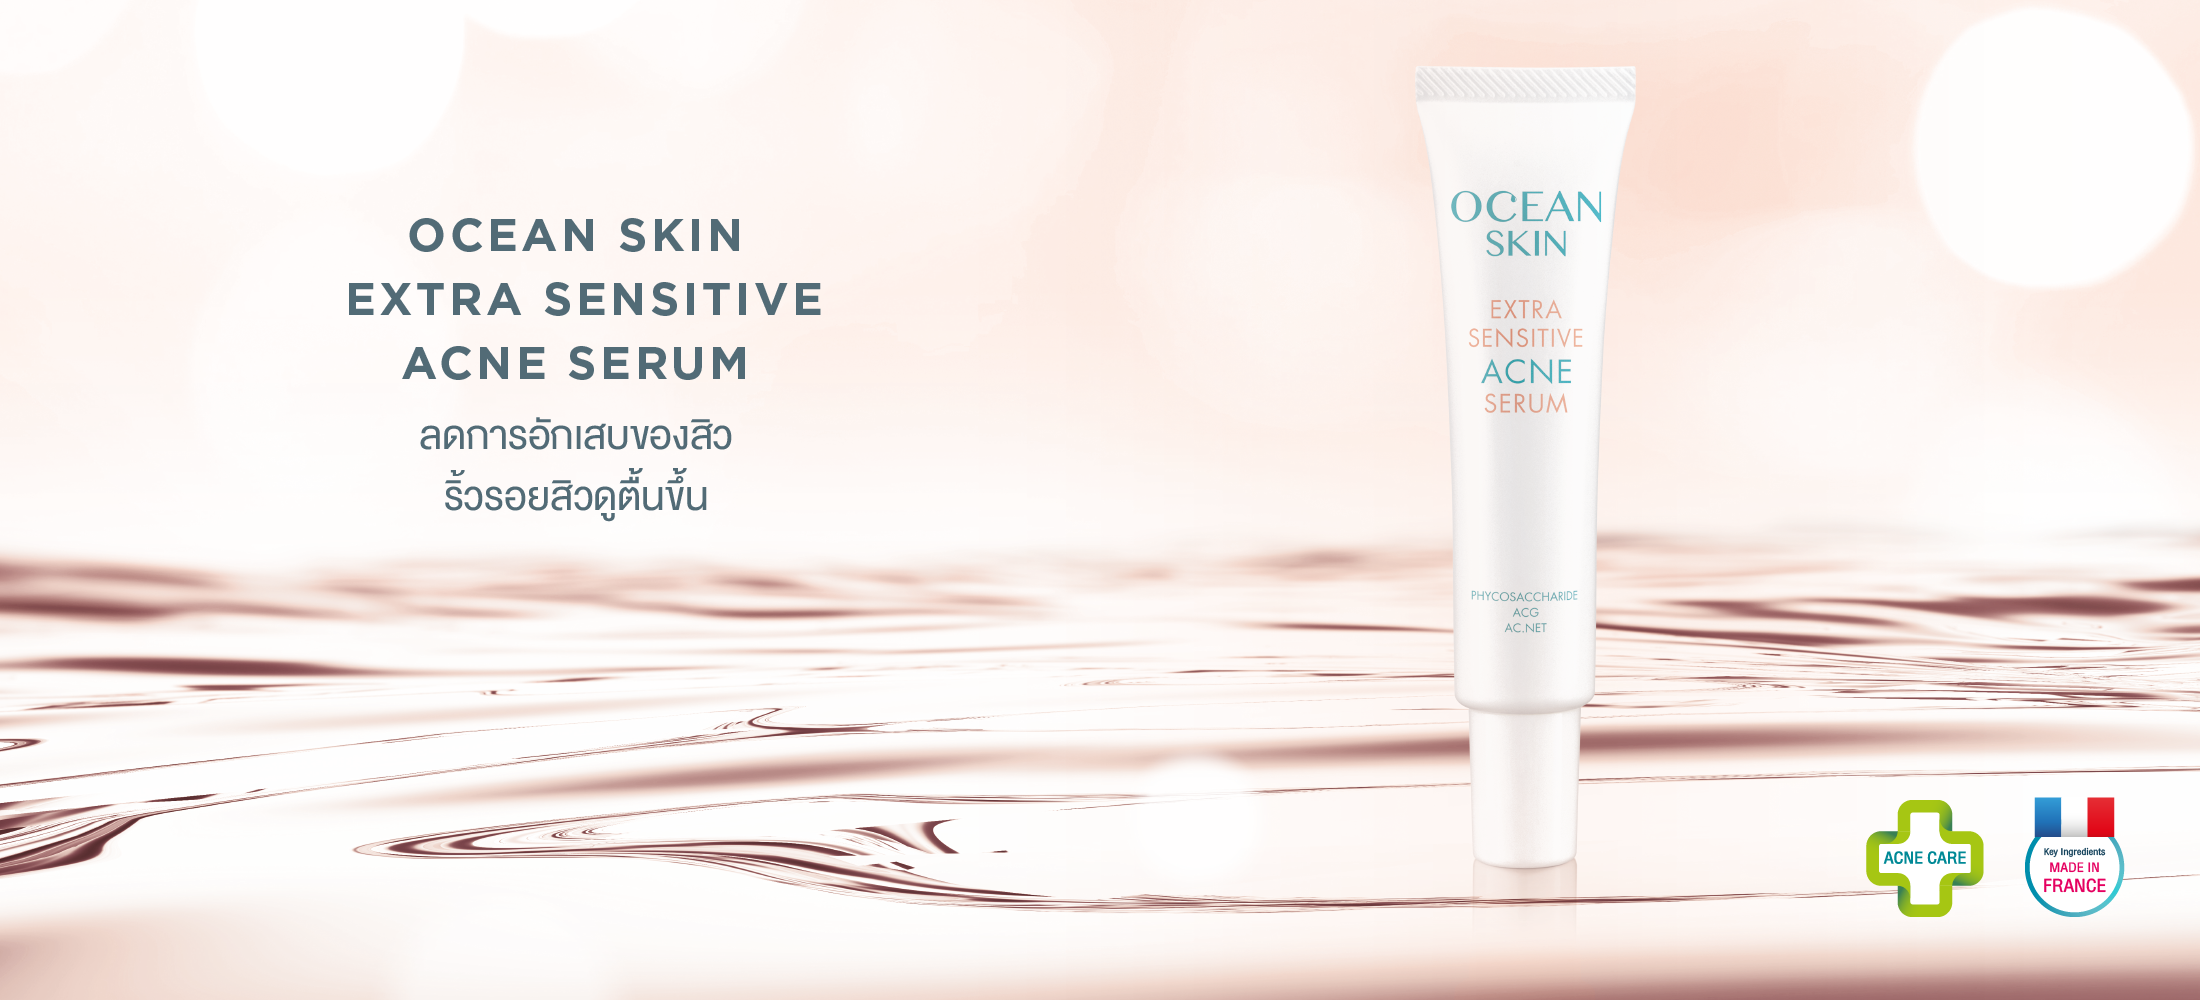 1-acne-banner-1100x500-thai-copy-01